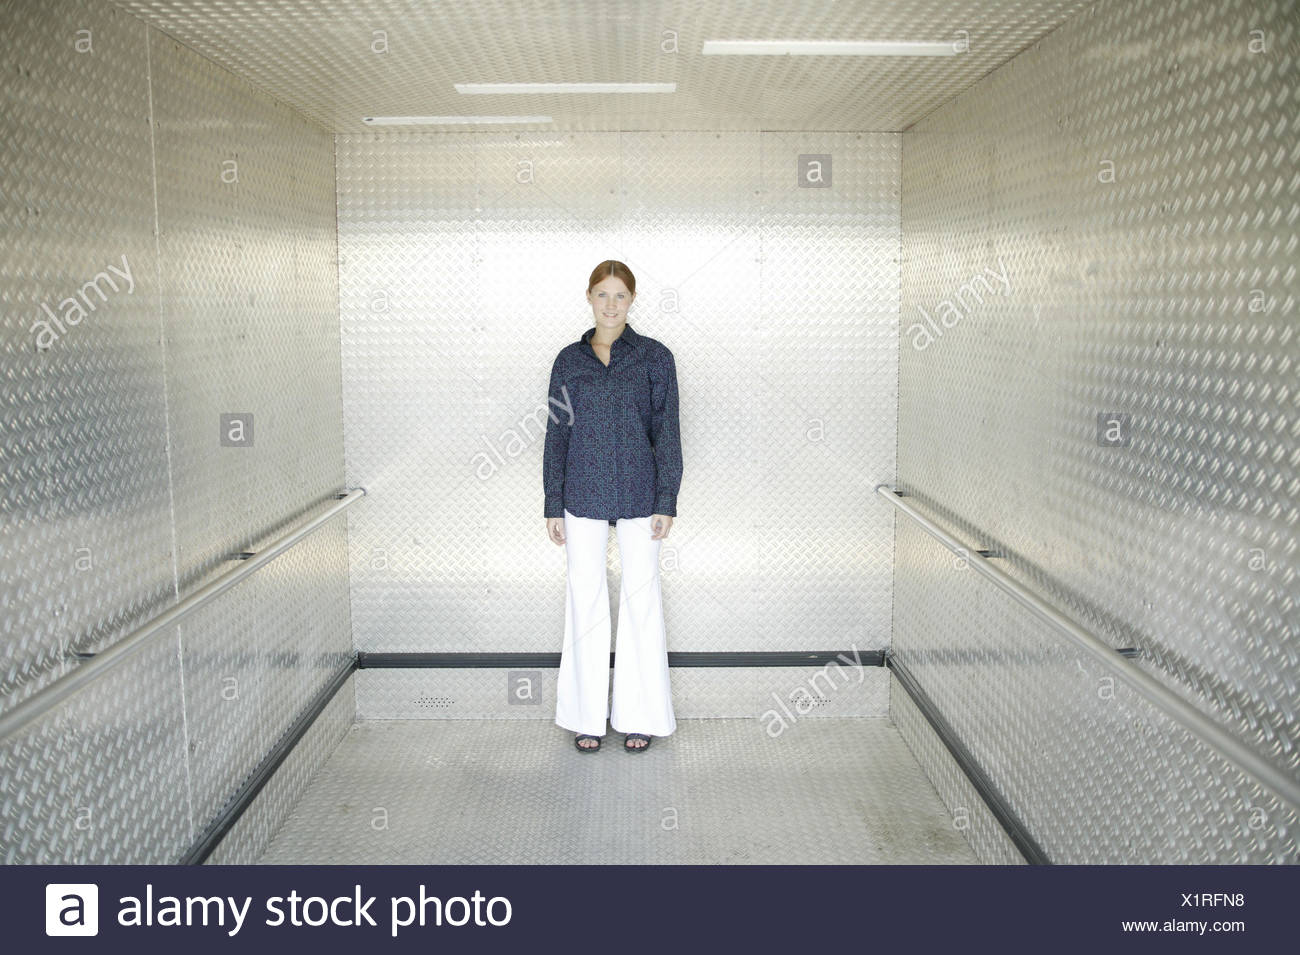 Lift, woman, young, friendly, 15 - 20 years, young persons, trainees, trainee, lift, lift, stand, course, openly, equalised, view camera, whole body, inside - Stock Image